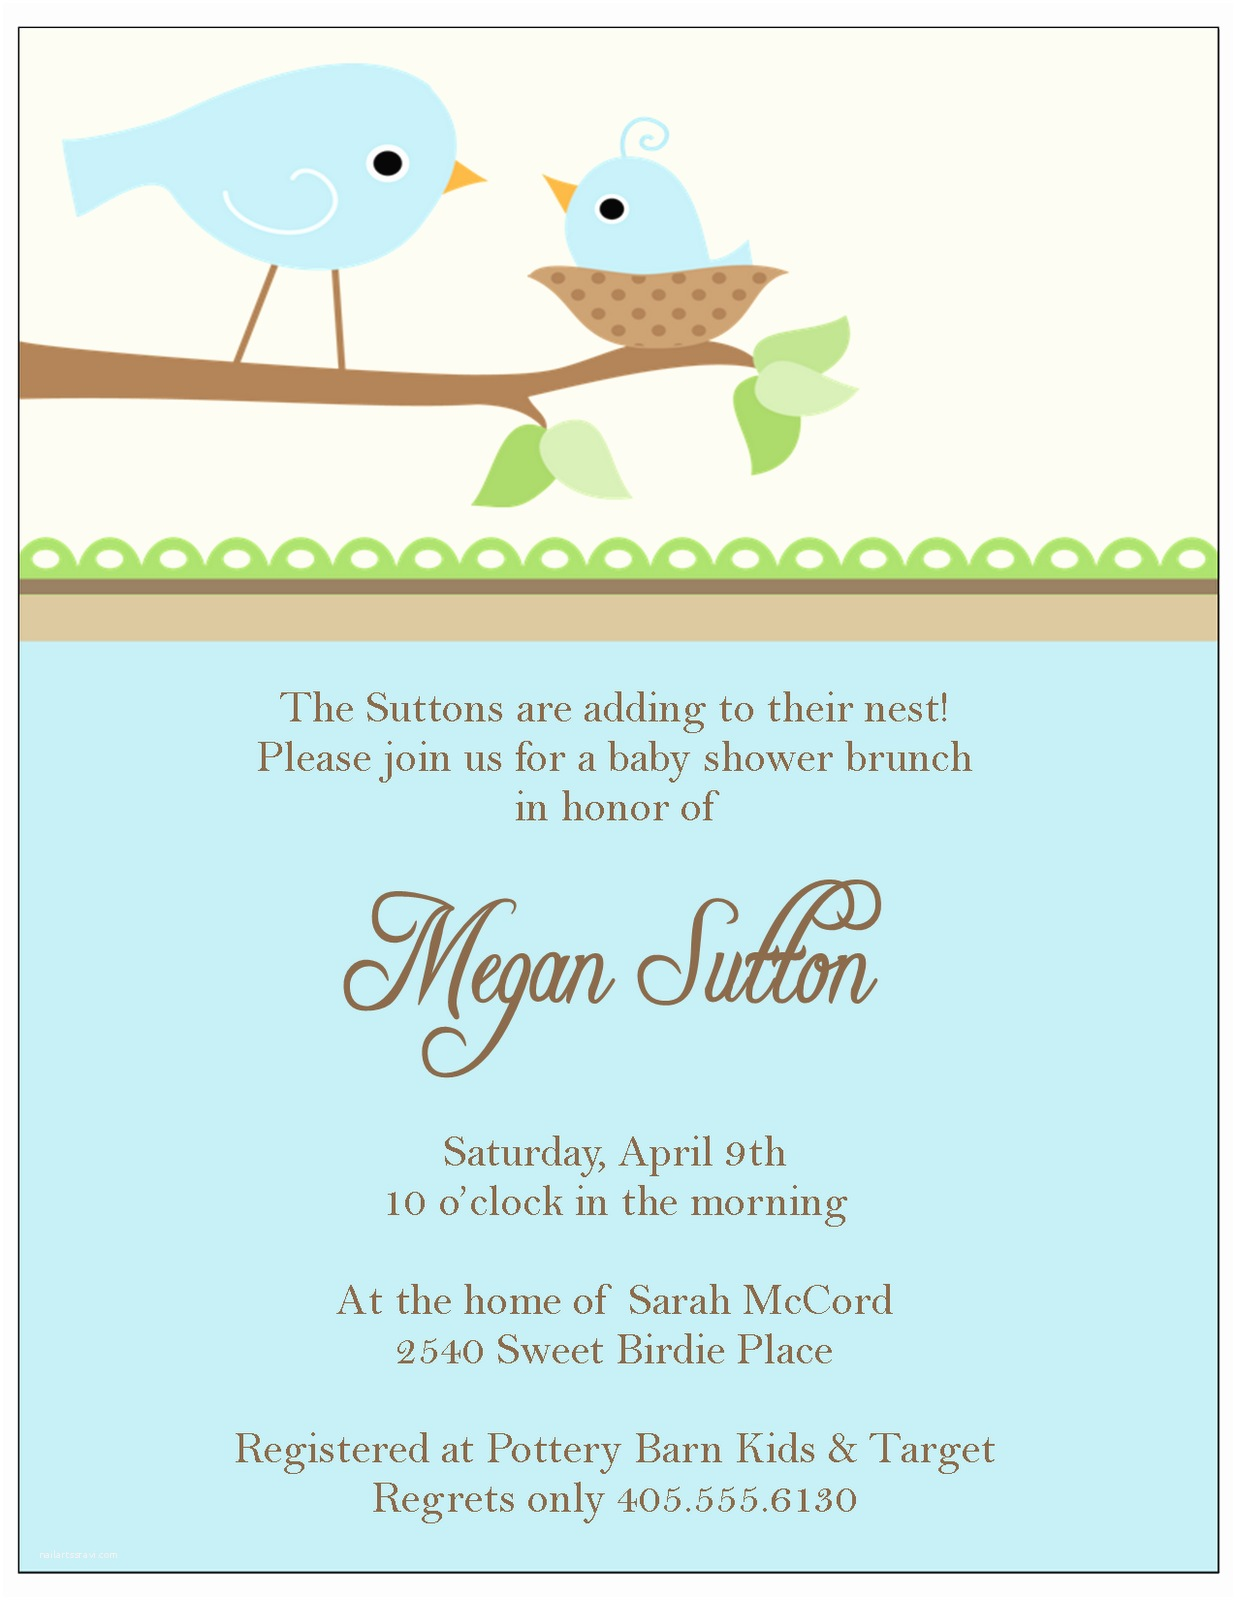 Free Baby Shower Invitation The Sweet Peach Paperie Little Bir Baby Shower